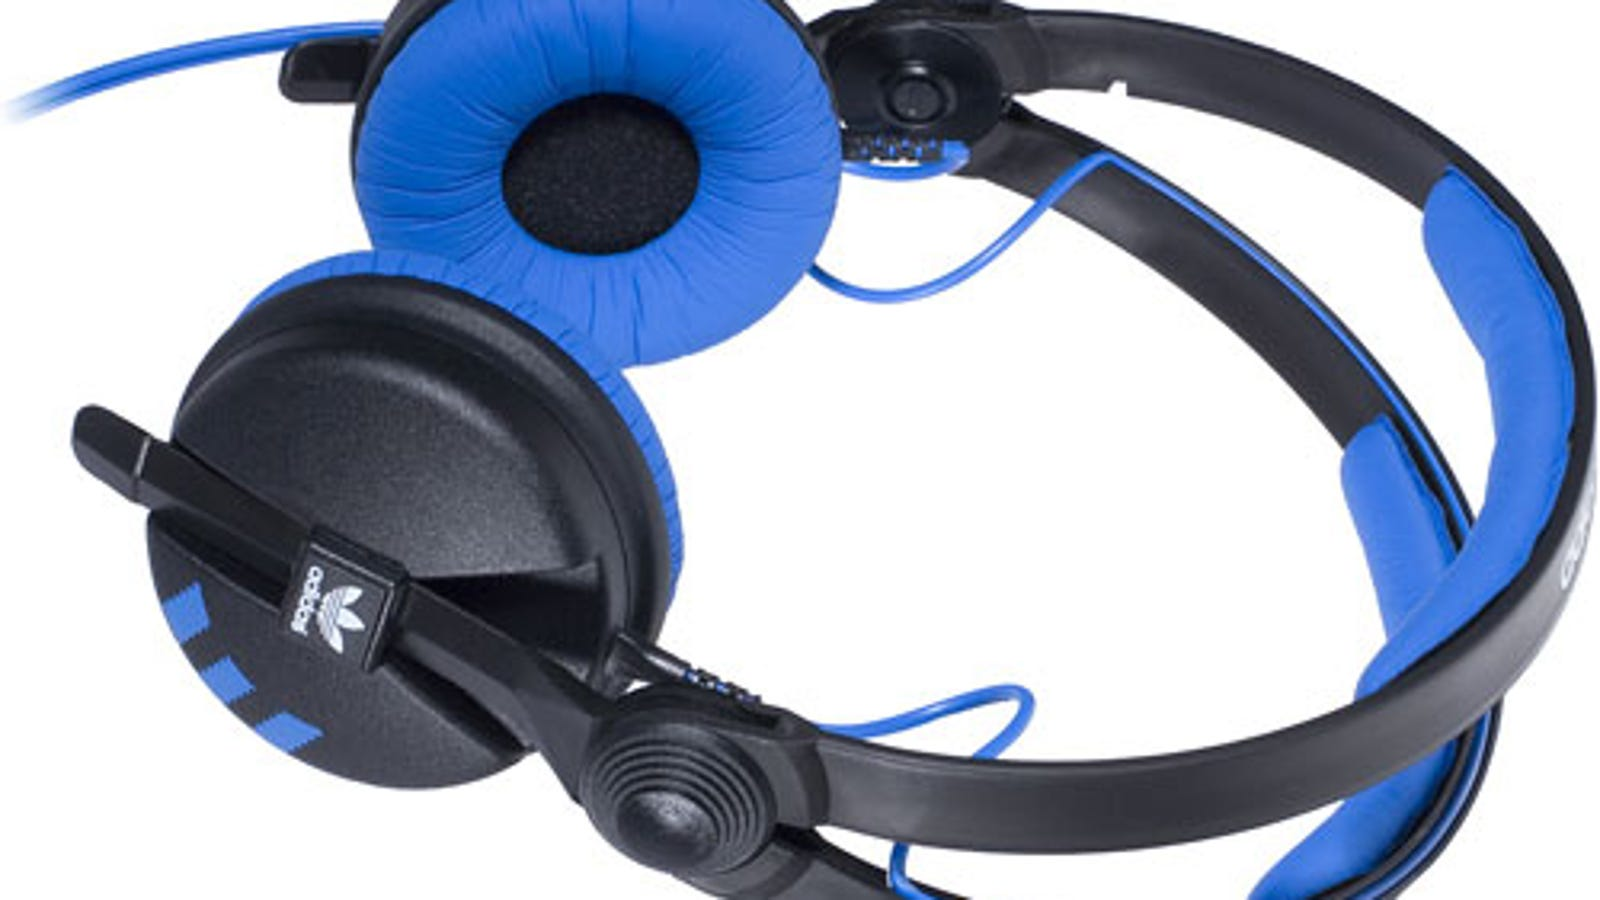 monster ncredible ntune wireless headphones